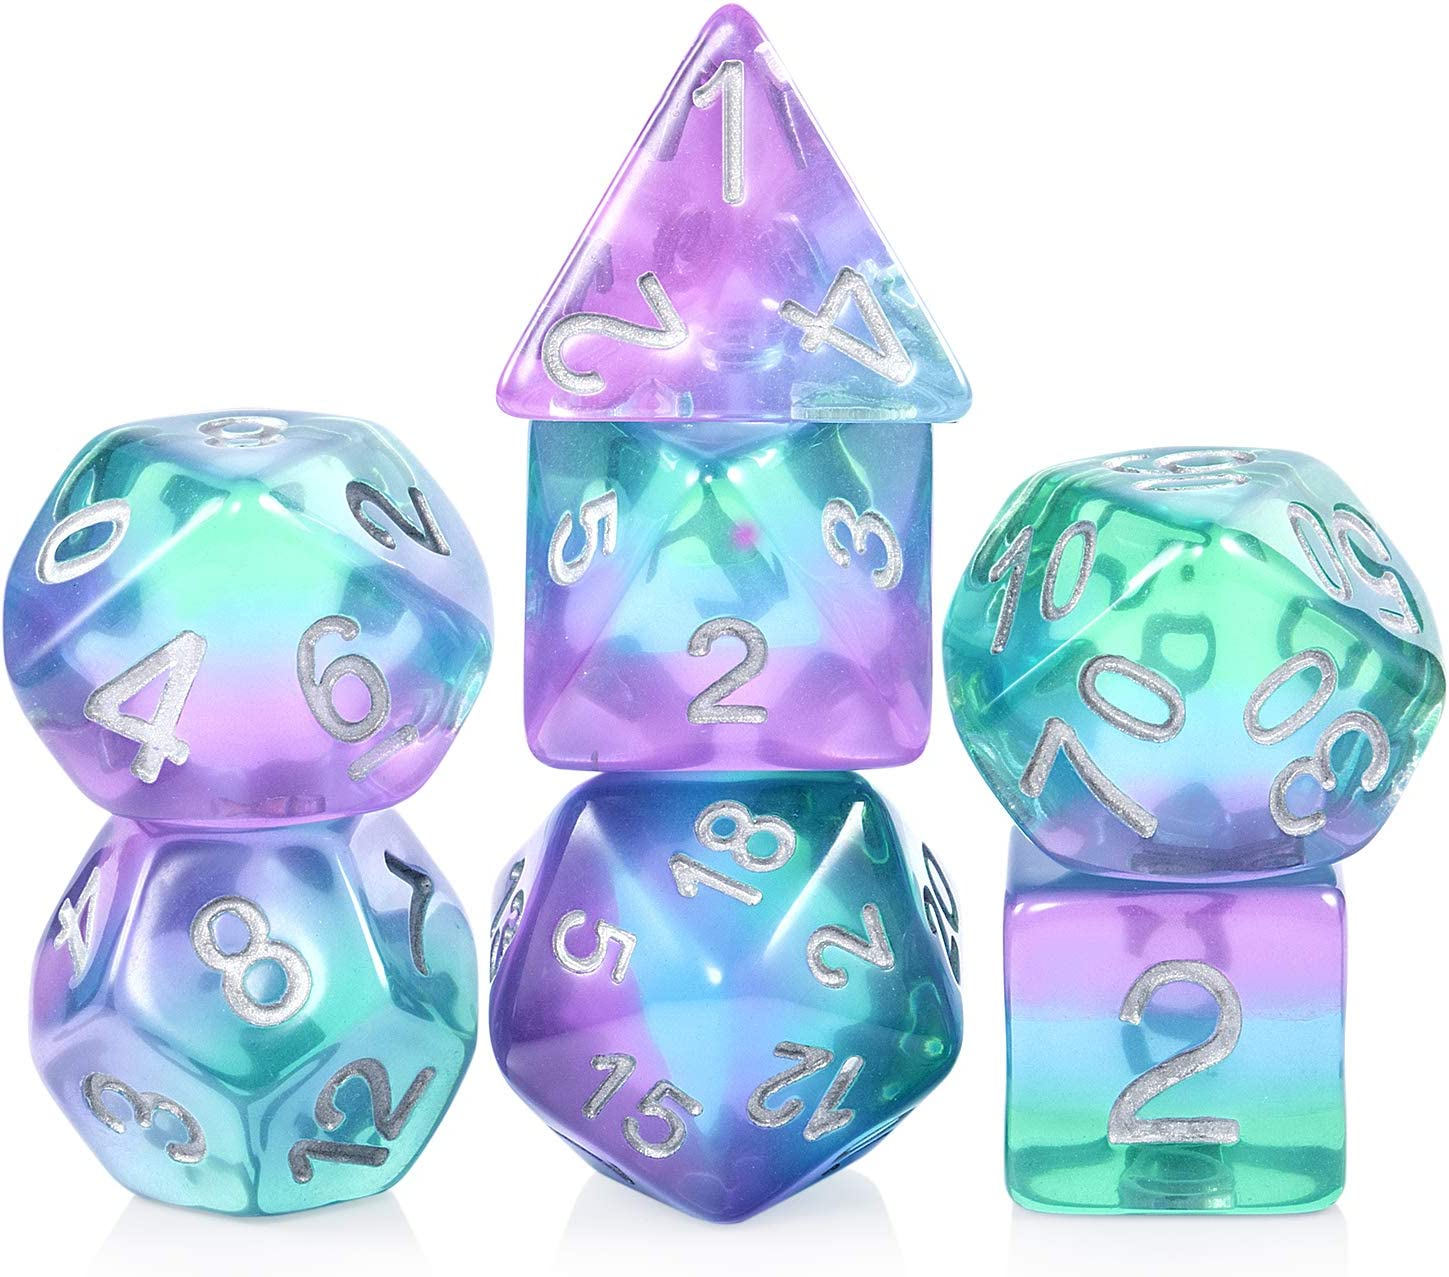 Opaque Poly D16 Dice 1 2 3 4 5 Set Yellow 16 Sided Die Dungeons Dragons RPG D/&D